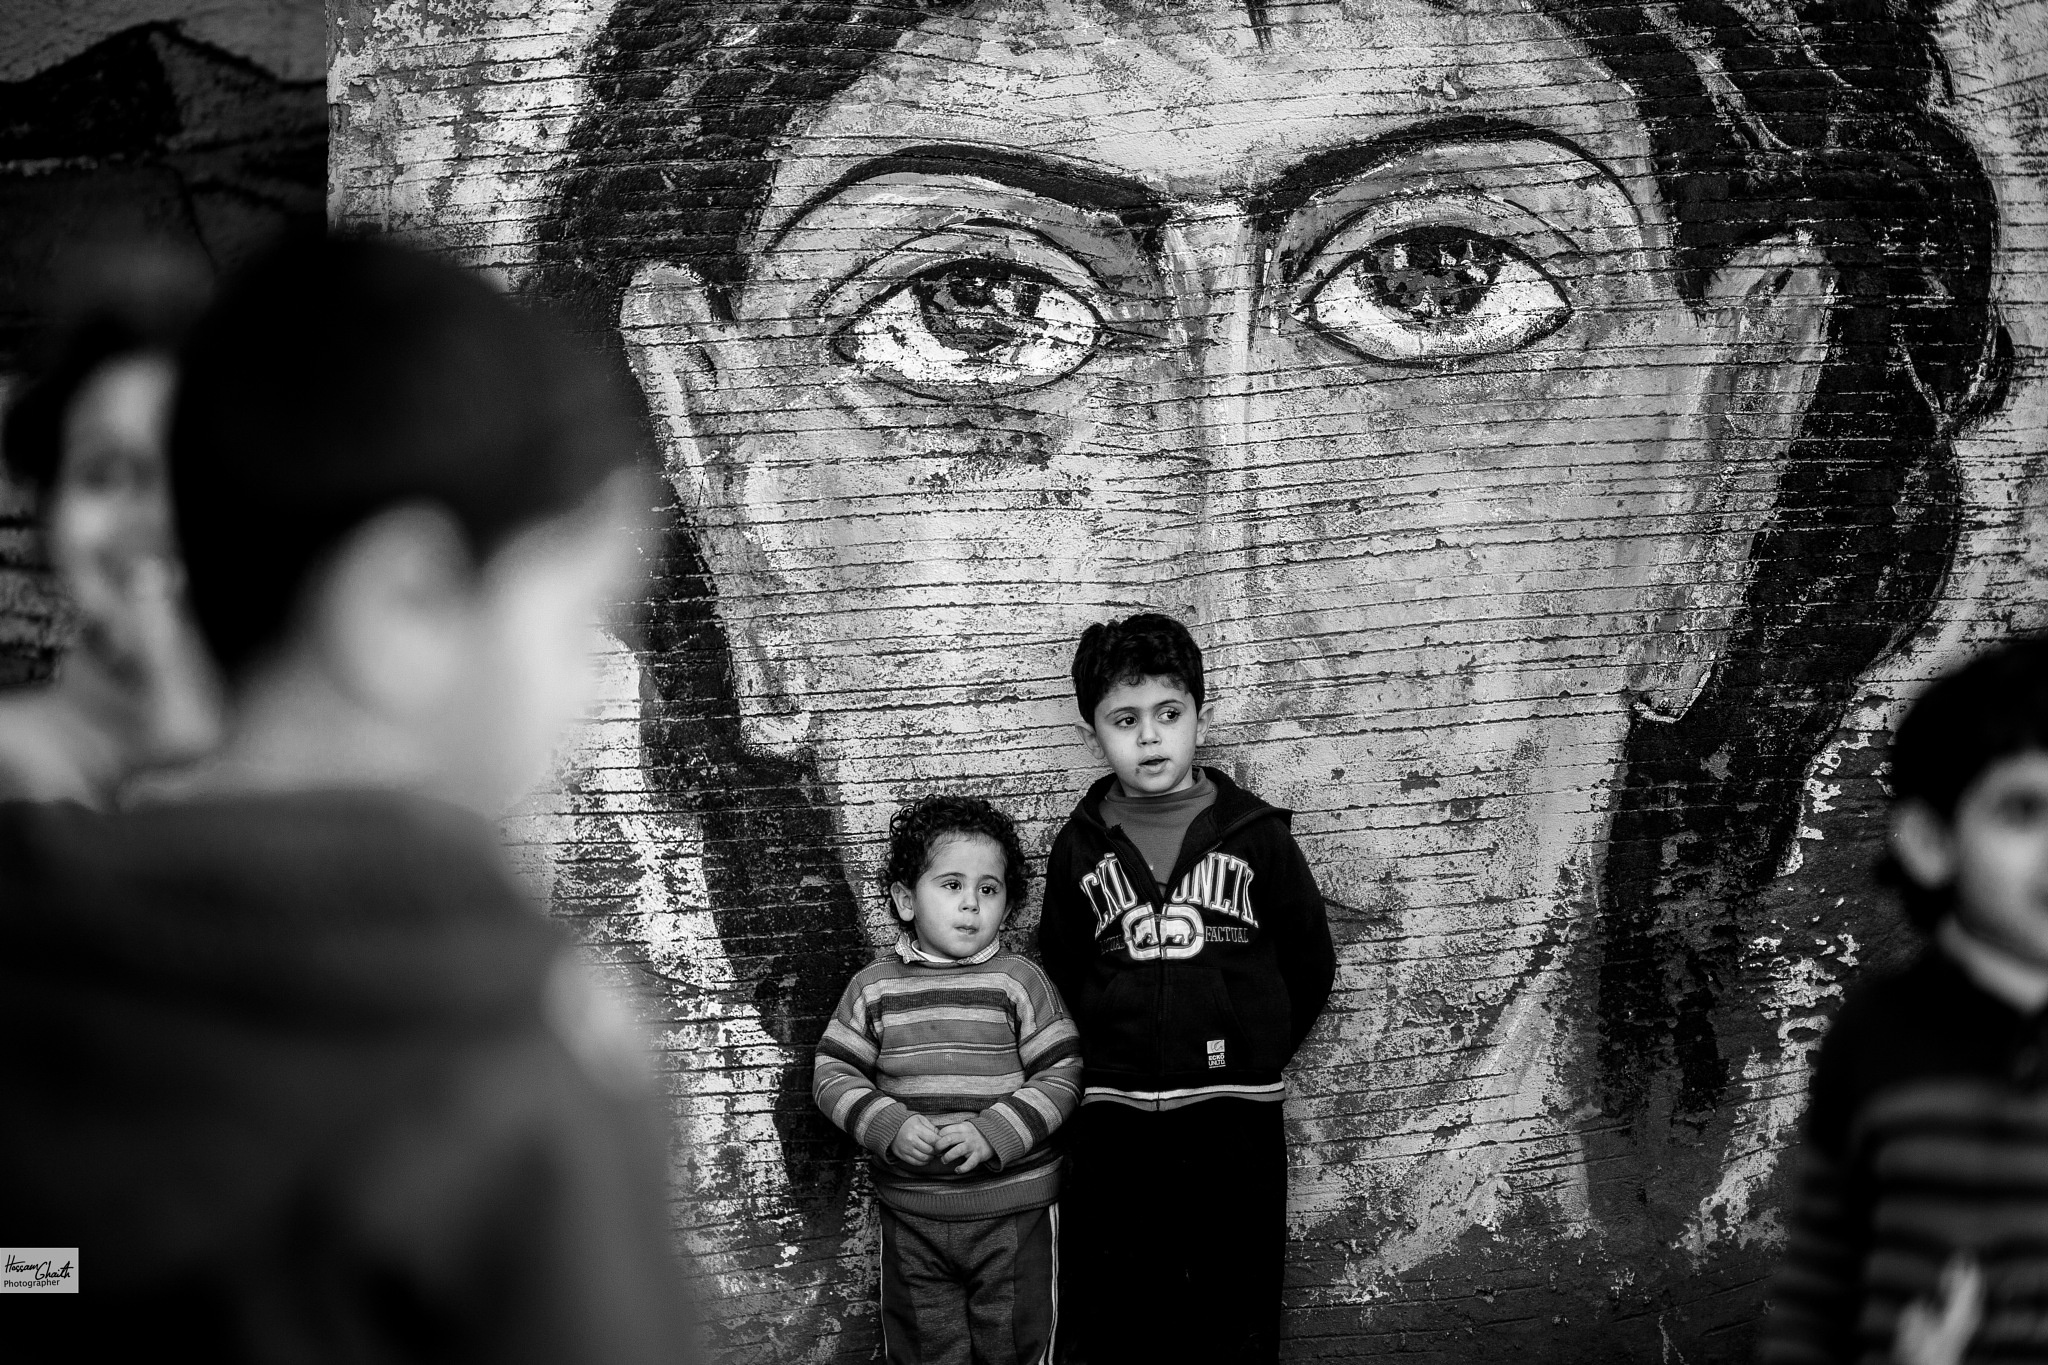 Eyes can say more than the mouth by Hossam Ahmed Ghaith